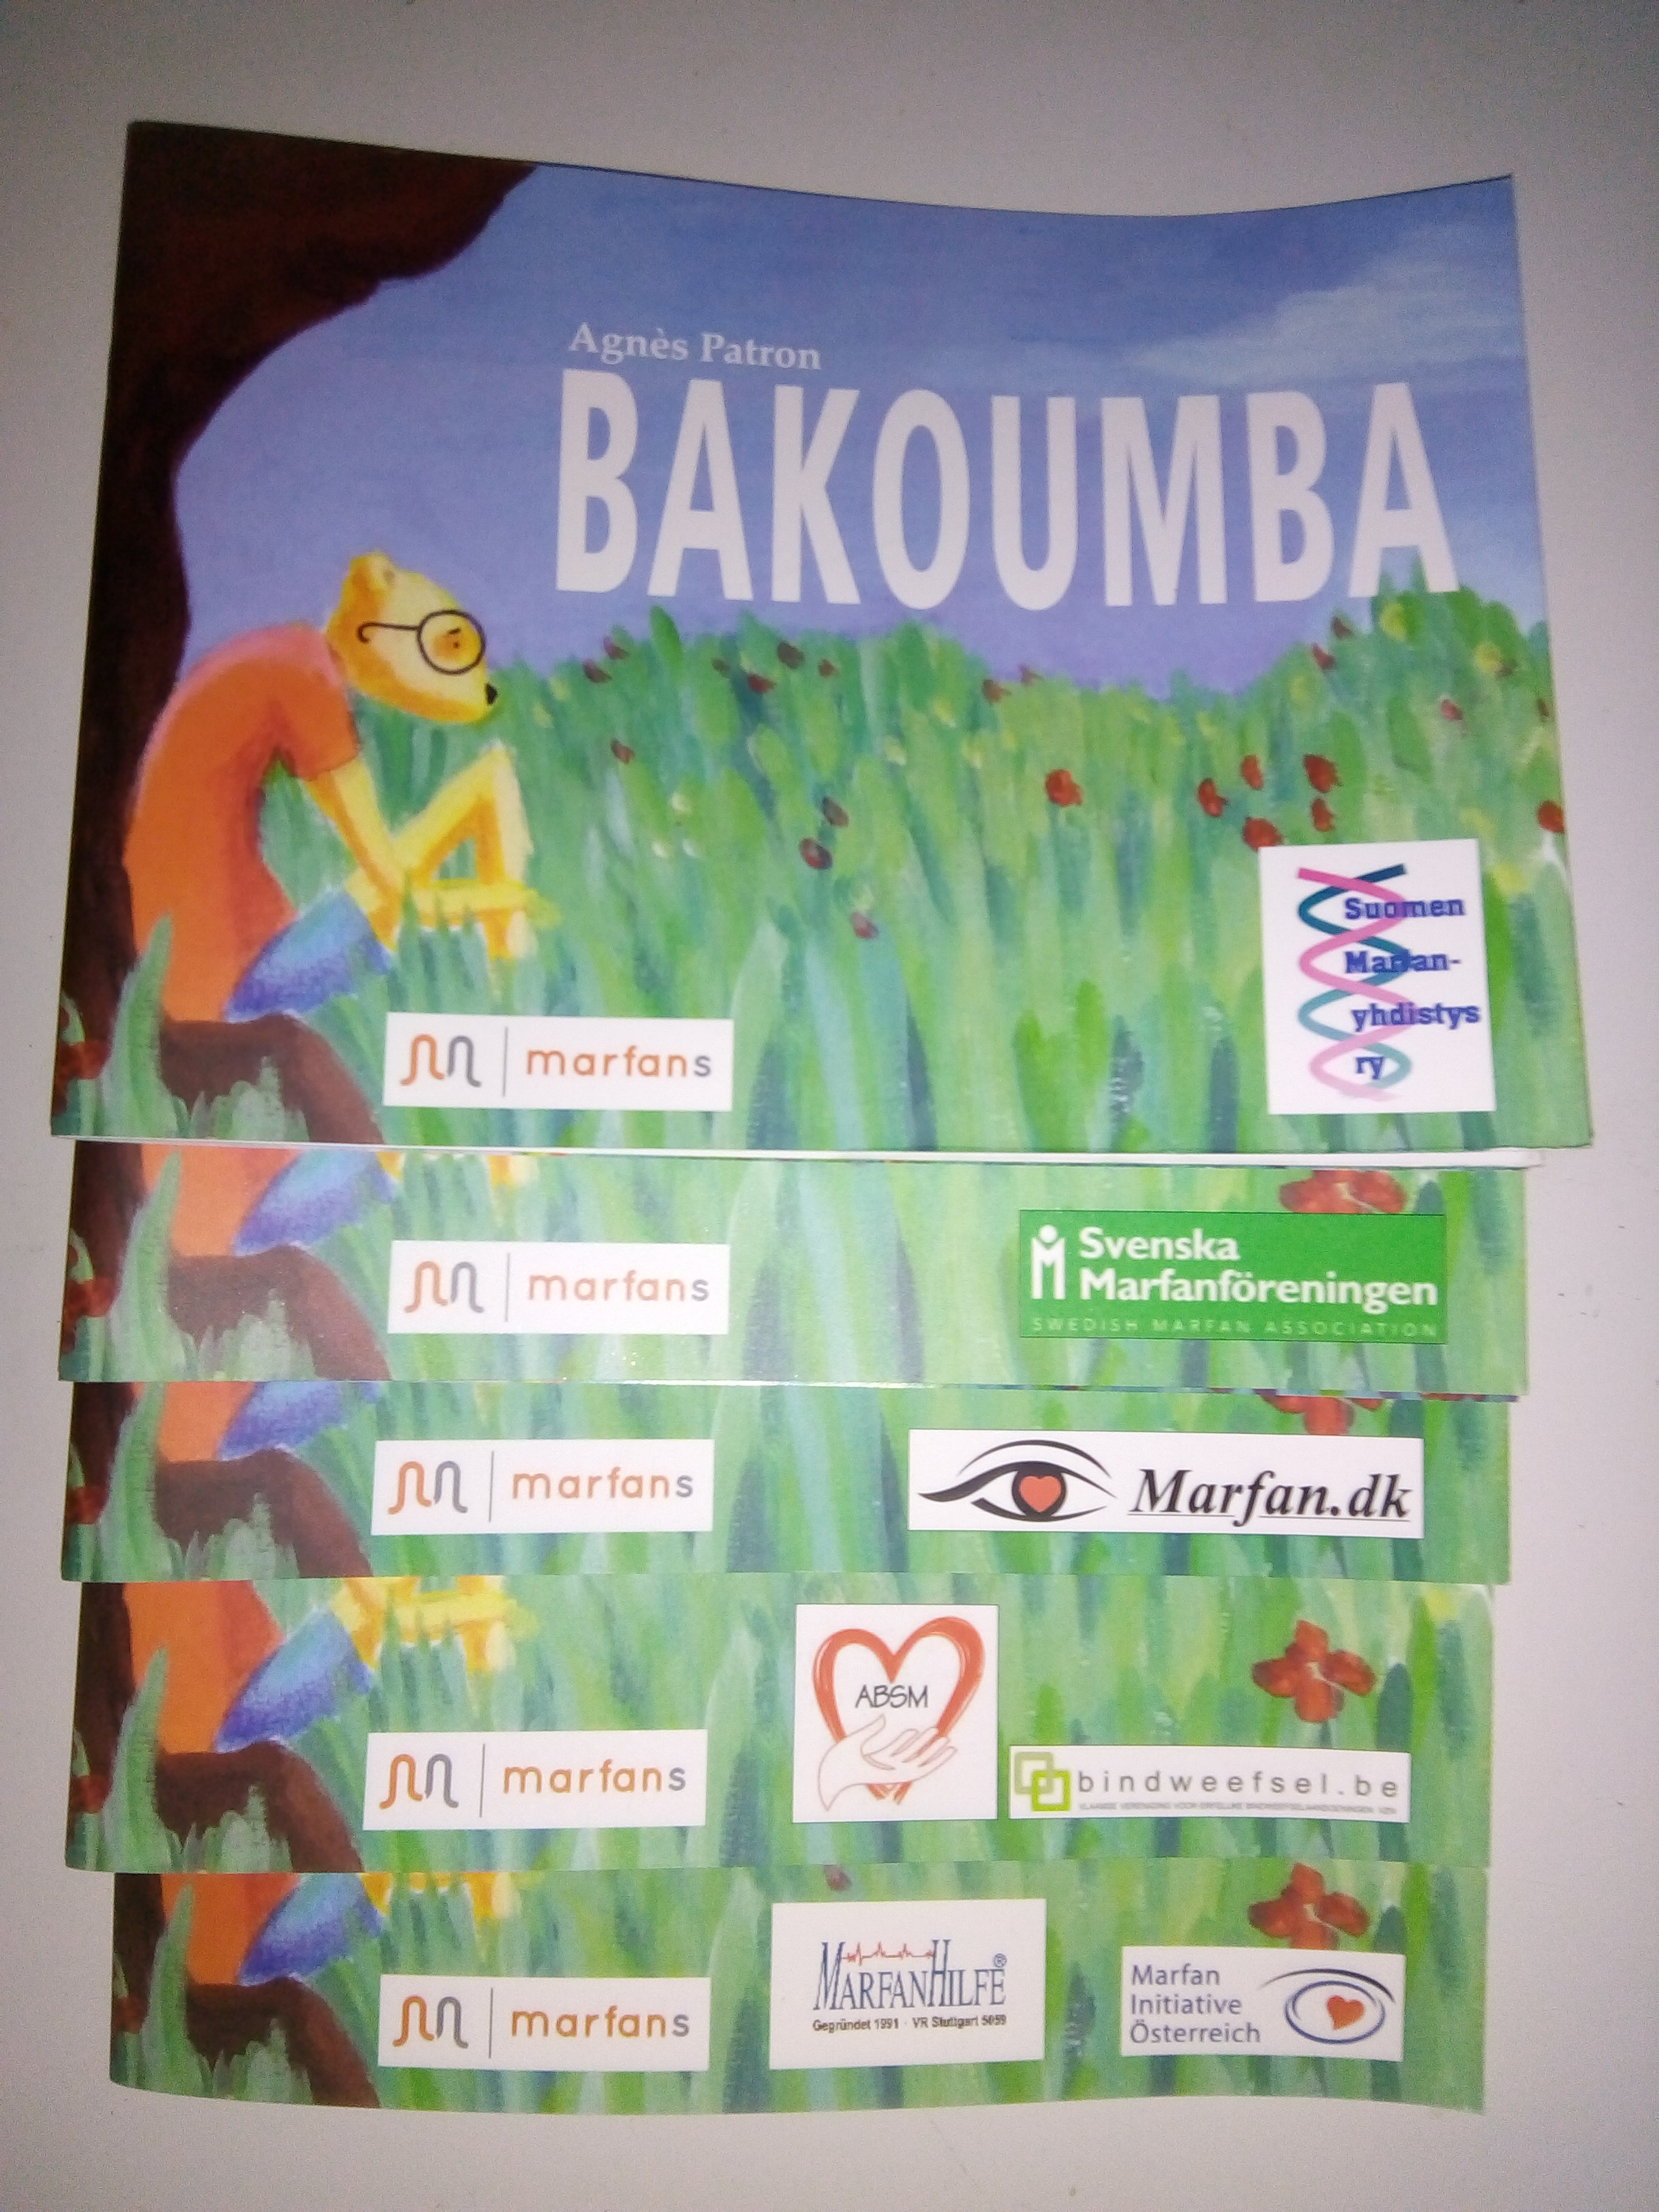 Update on Marfan Bakoumba book translations